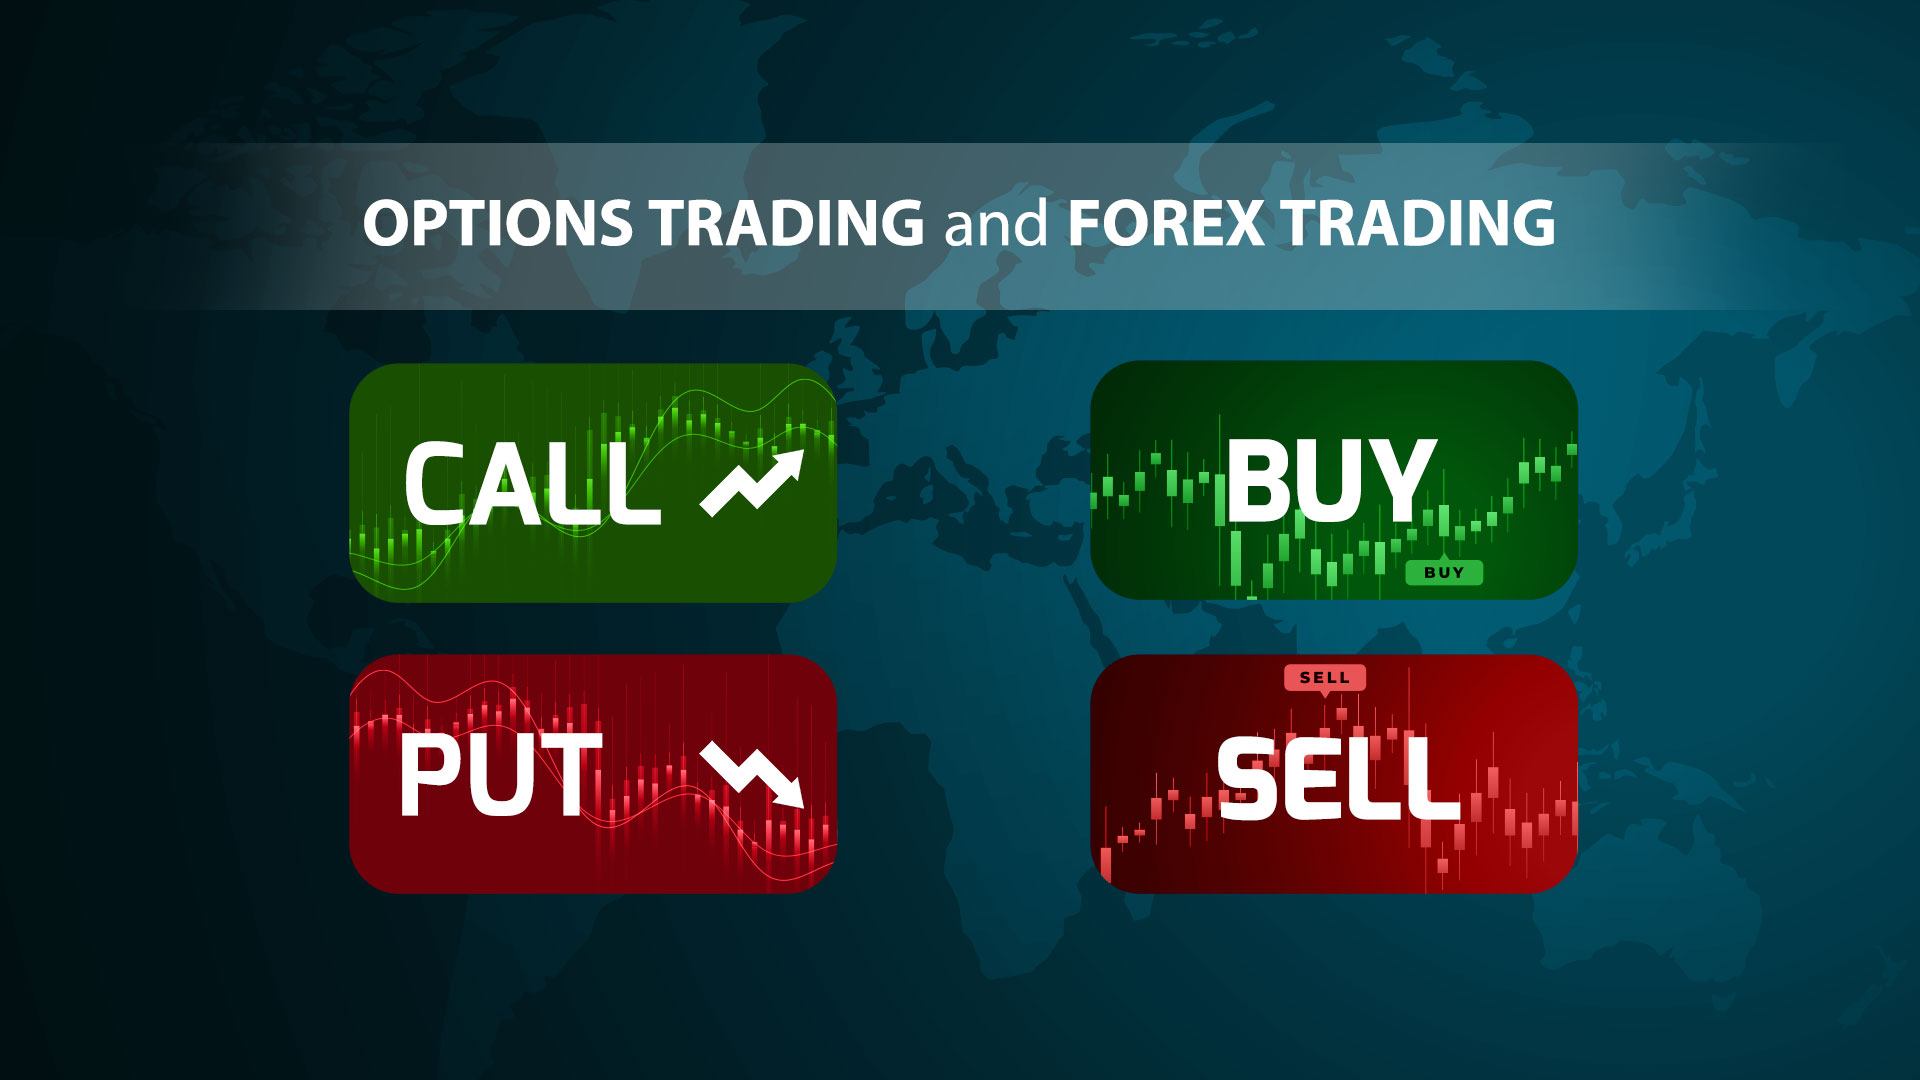 Options Trading and Forex Trading: Understanding the Differences